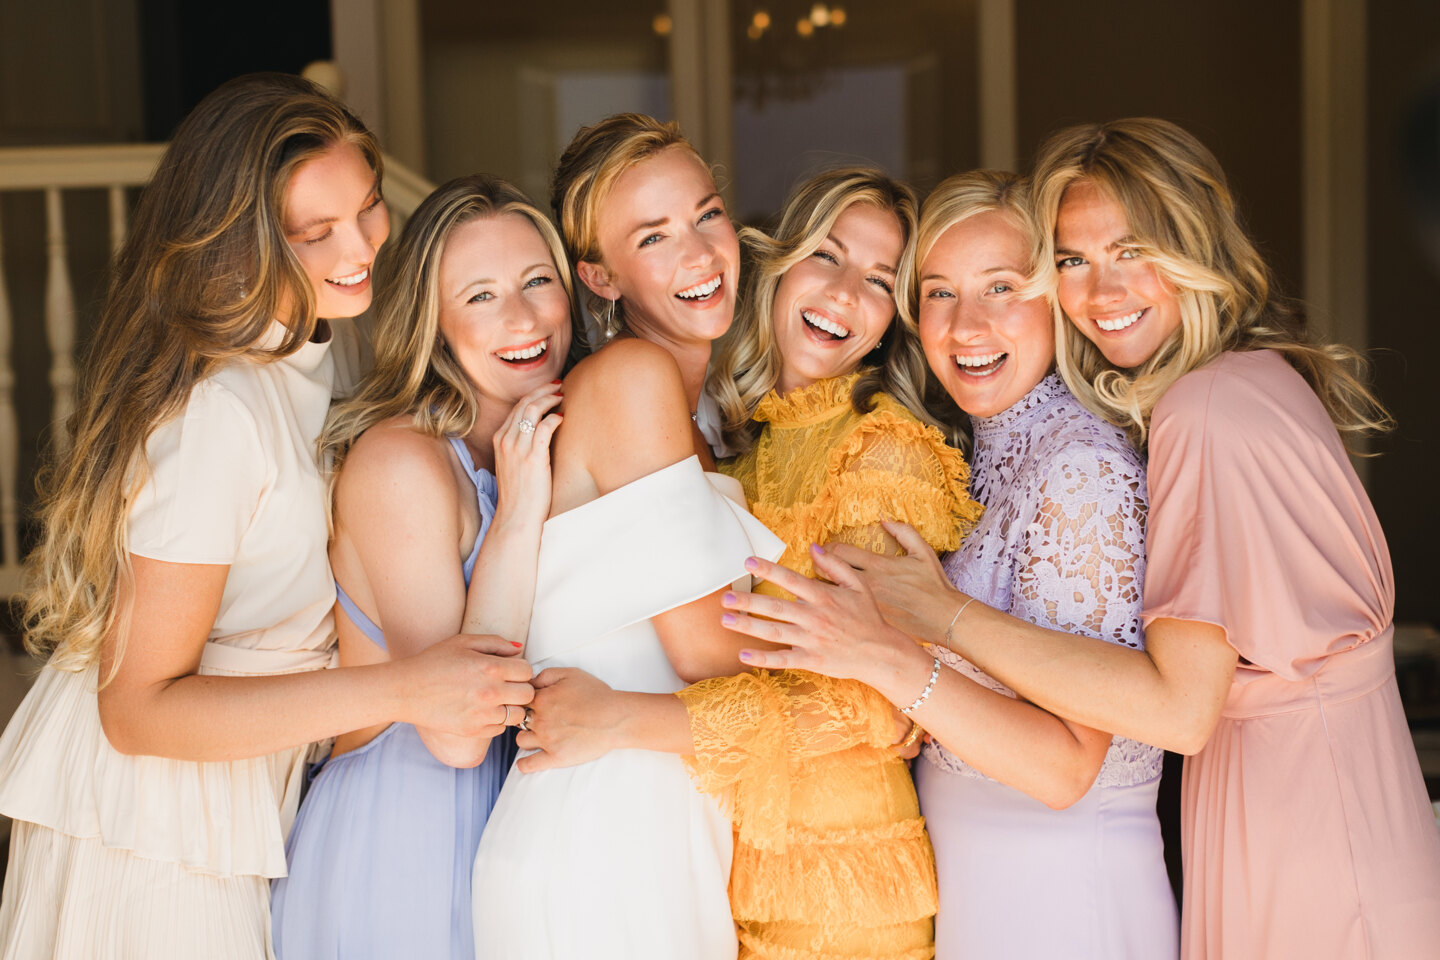 Wedding Photographer in Italy: Cheerful and smiling girlfriends of the bride posing with her on a morning photo shoot in a hotel room